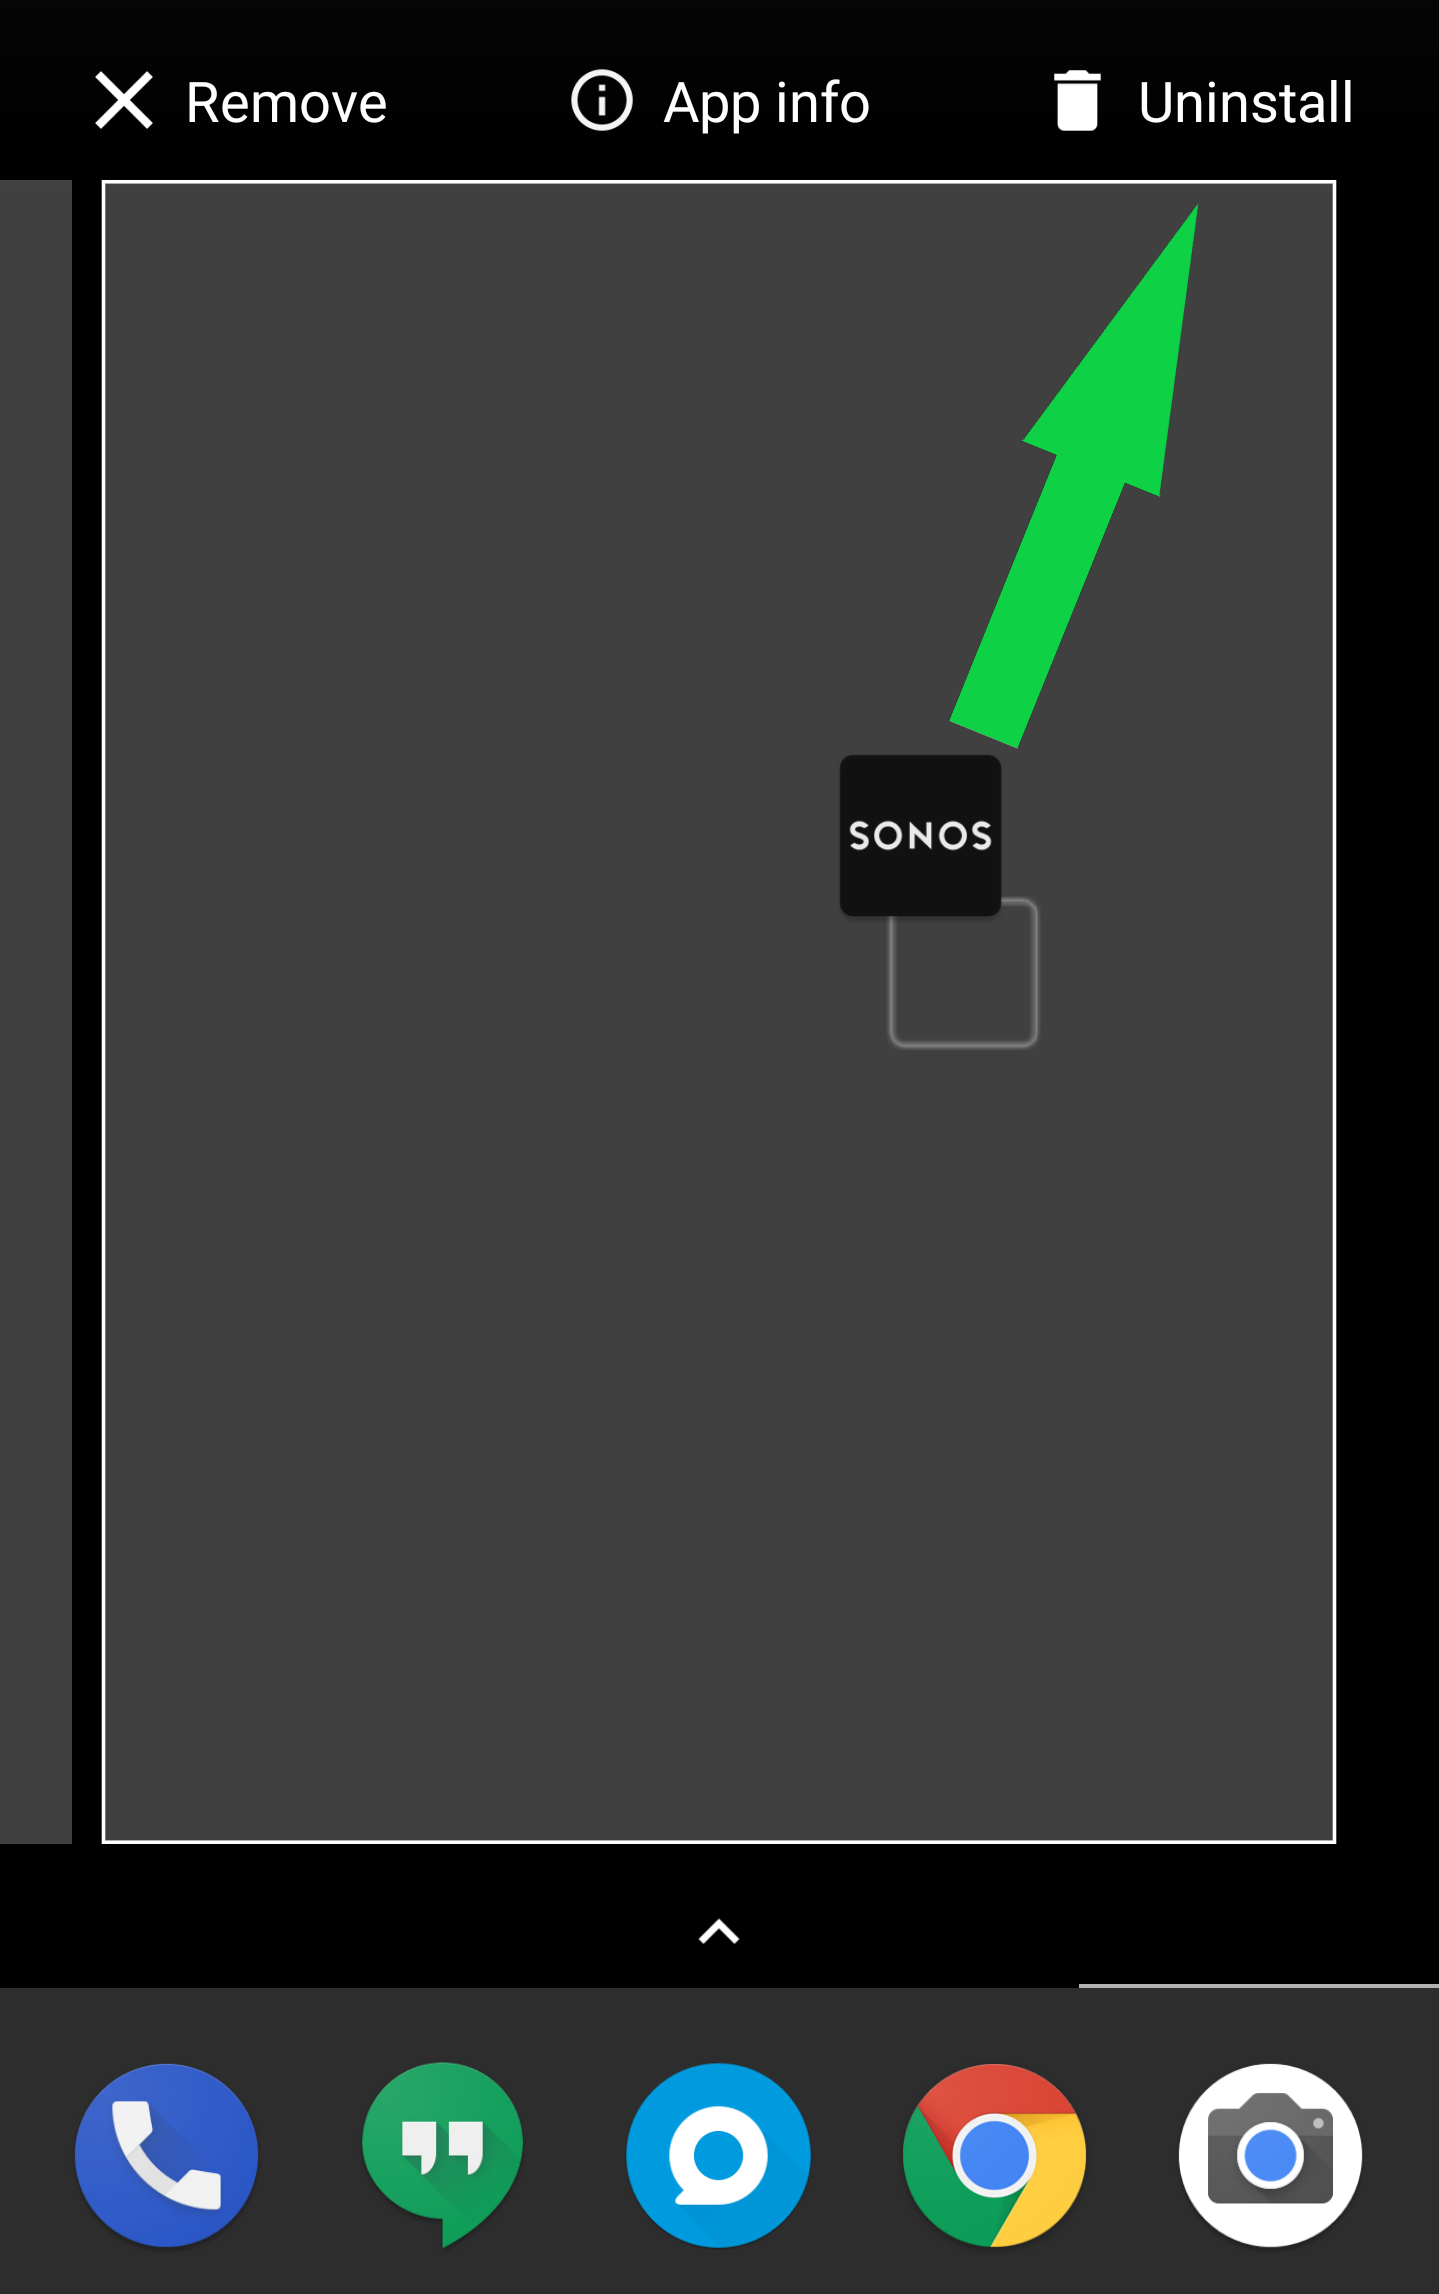 Dragging the sonos icon to the uninstall option. Illustration.